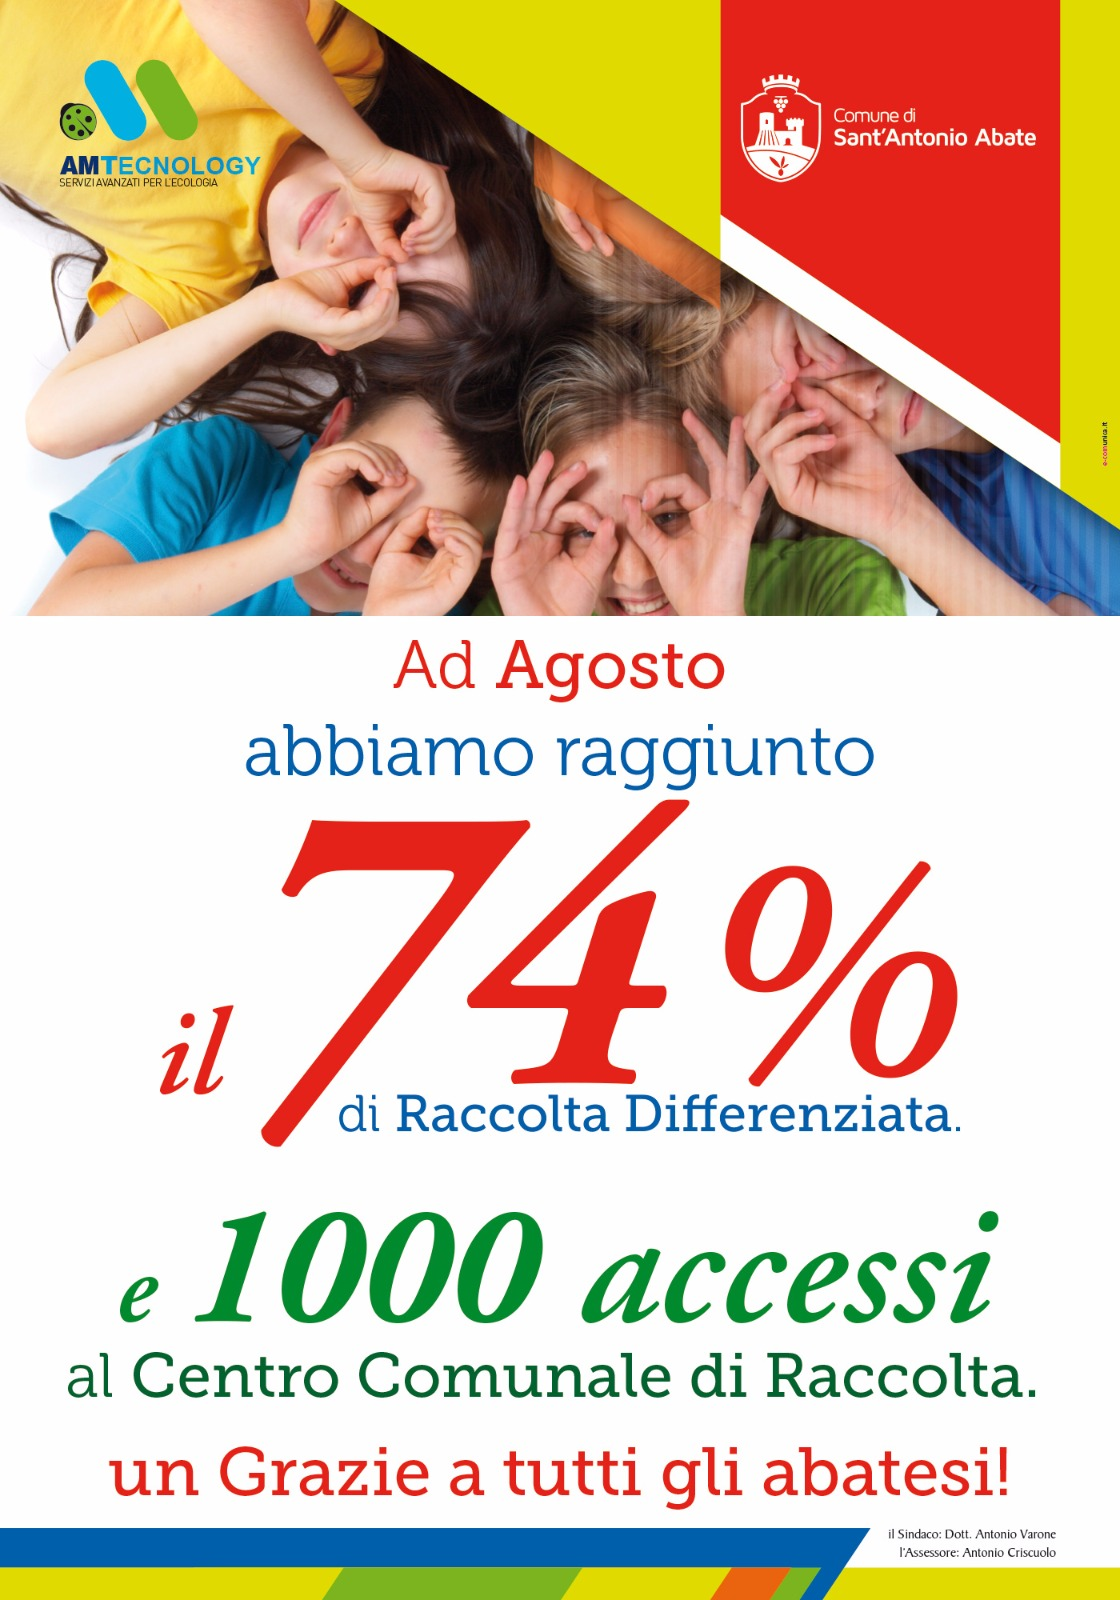 raccolta differenziata 74%